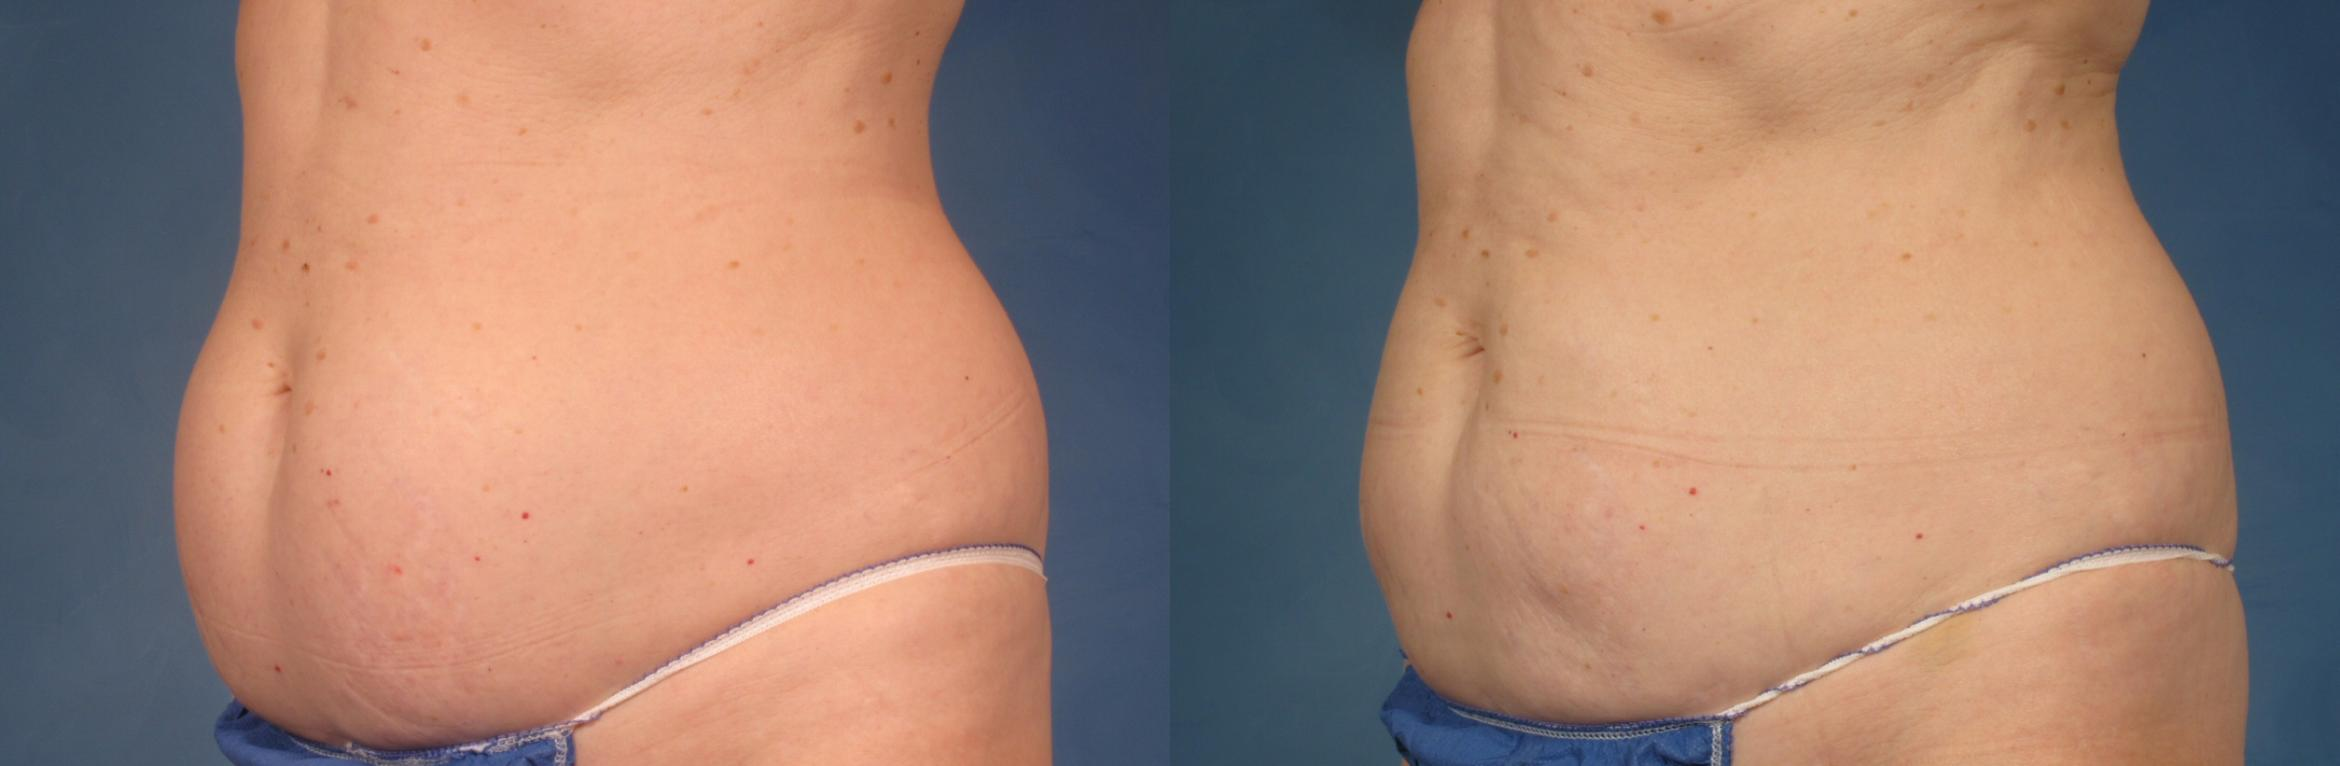 CoolSculpting® Case 213 Before & After View #2 | Naples, FL | Kent V. Hasen, M.D.